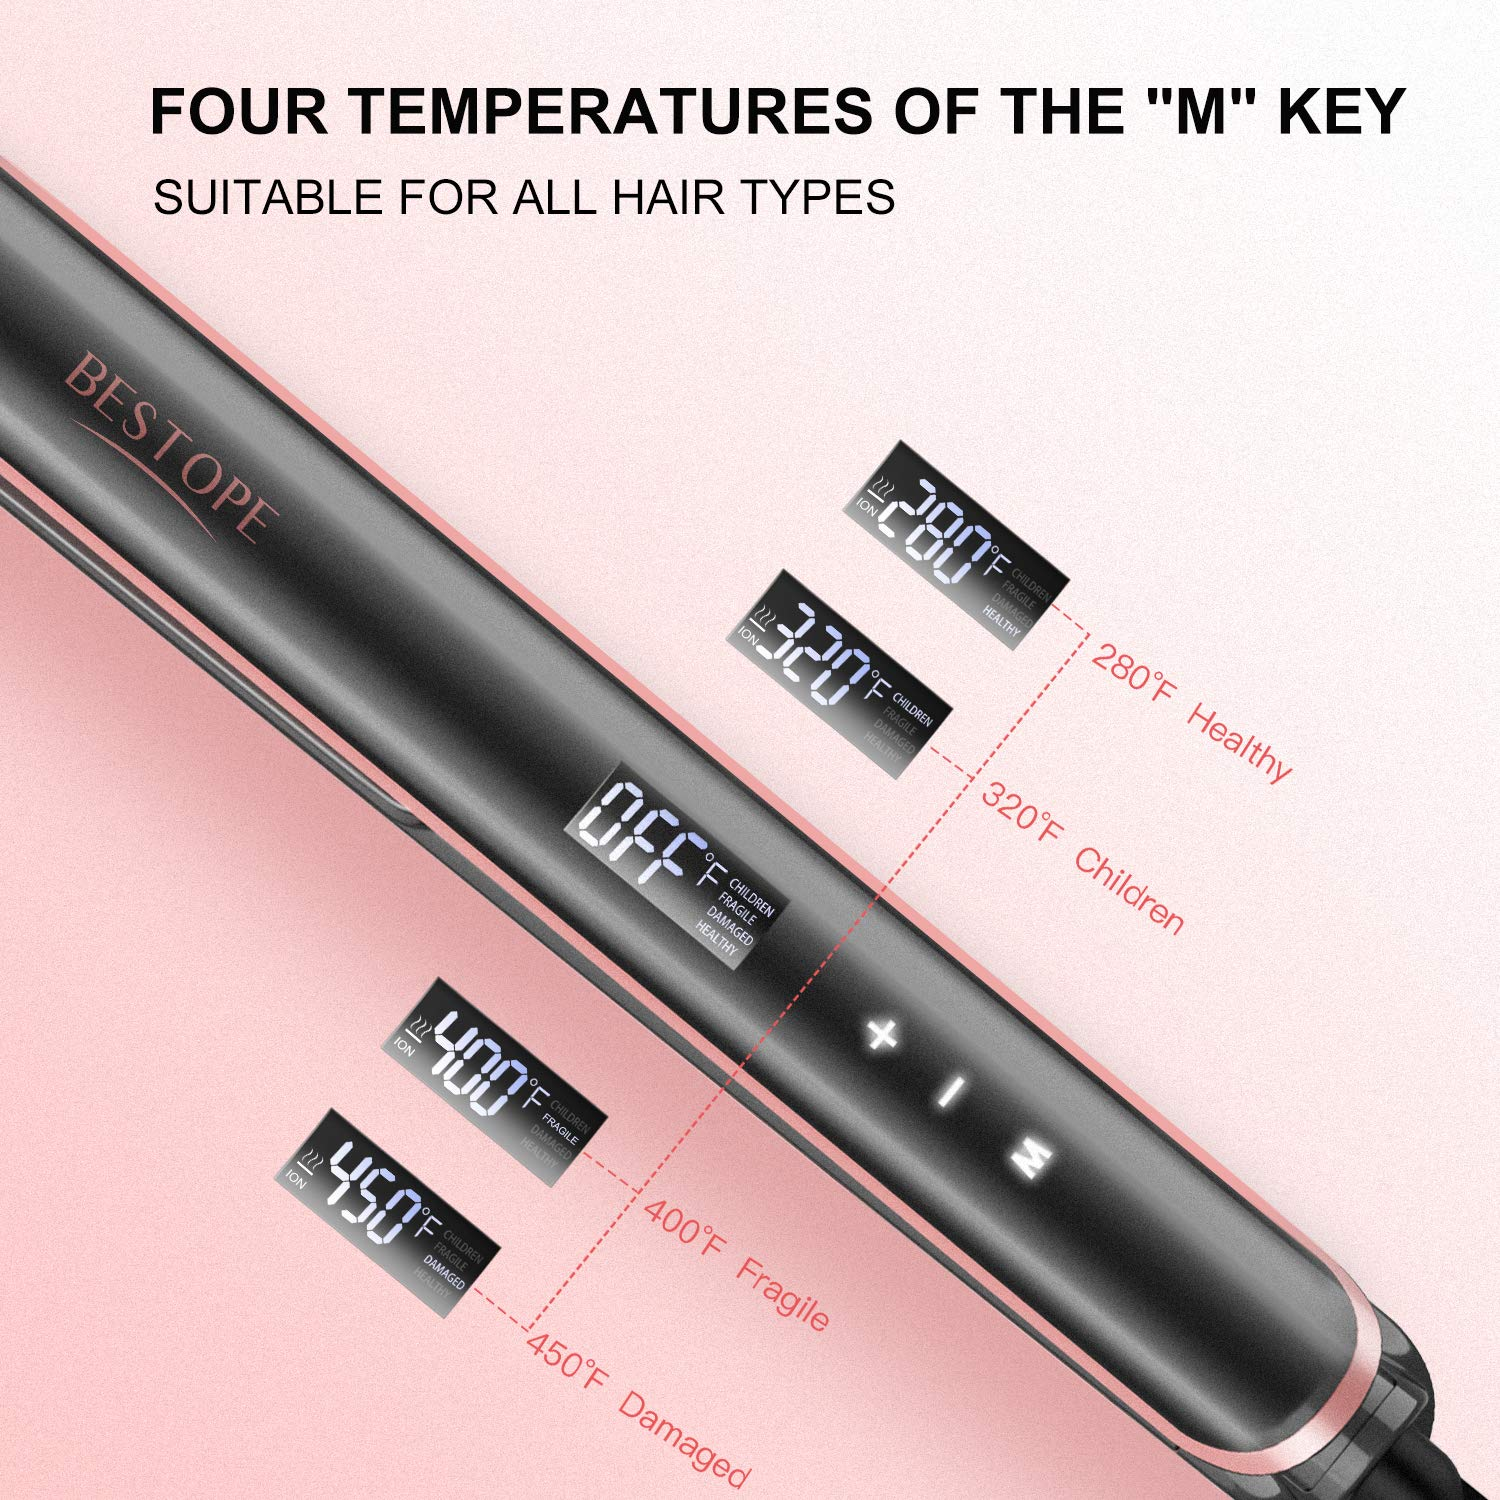 1 Inch Hair Straightener Professional Flat Iron for Hair with MCH Technology